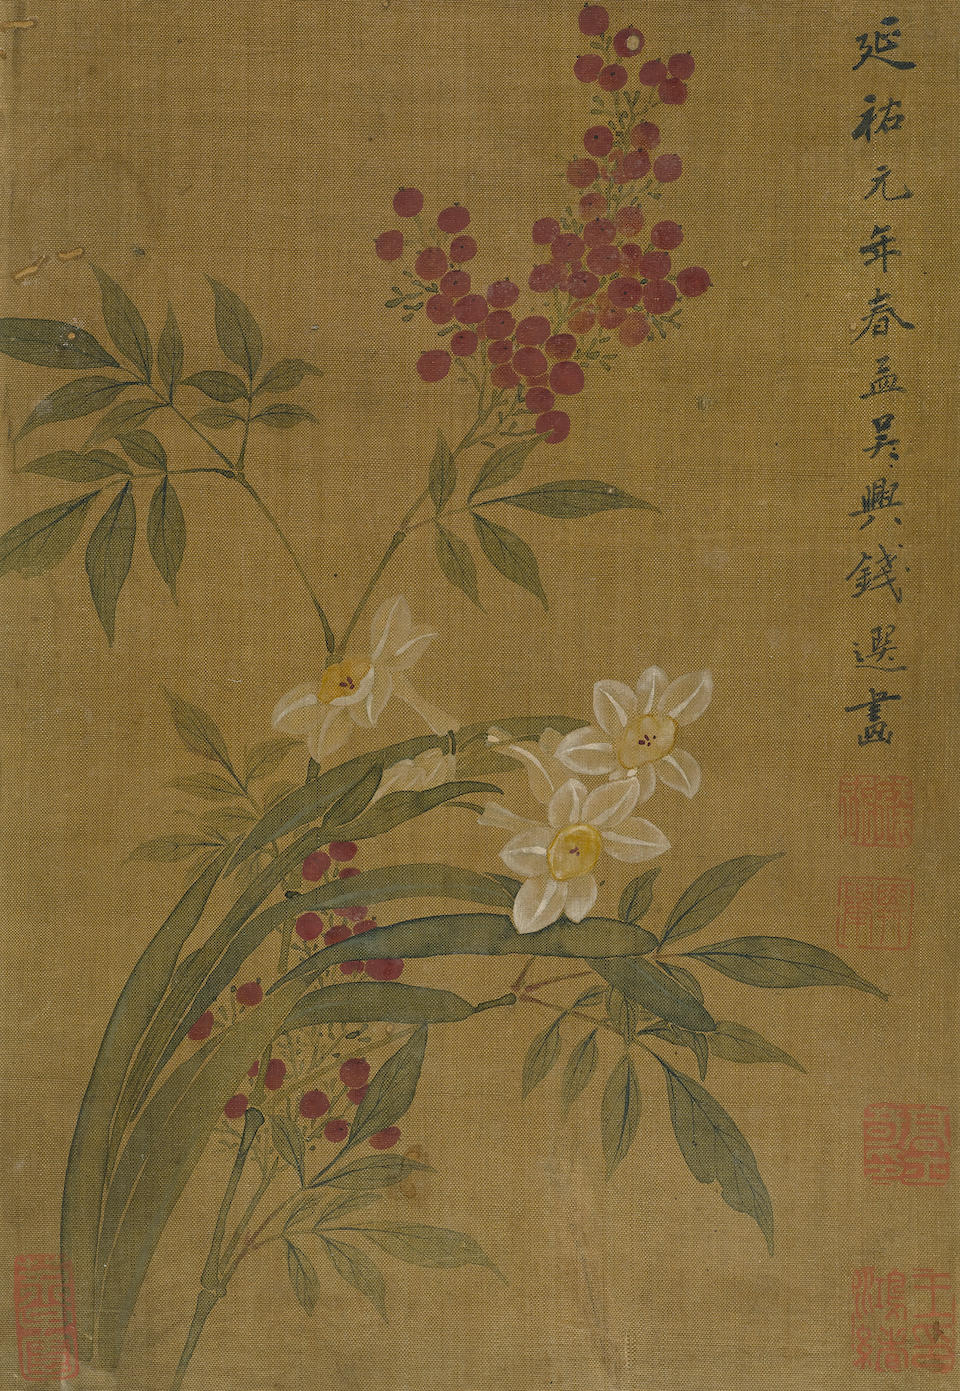 After Qian Xuan (1235-1305) Flower and Insects, 19th century